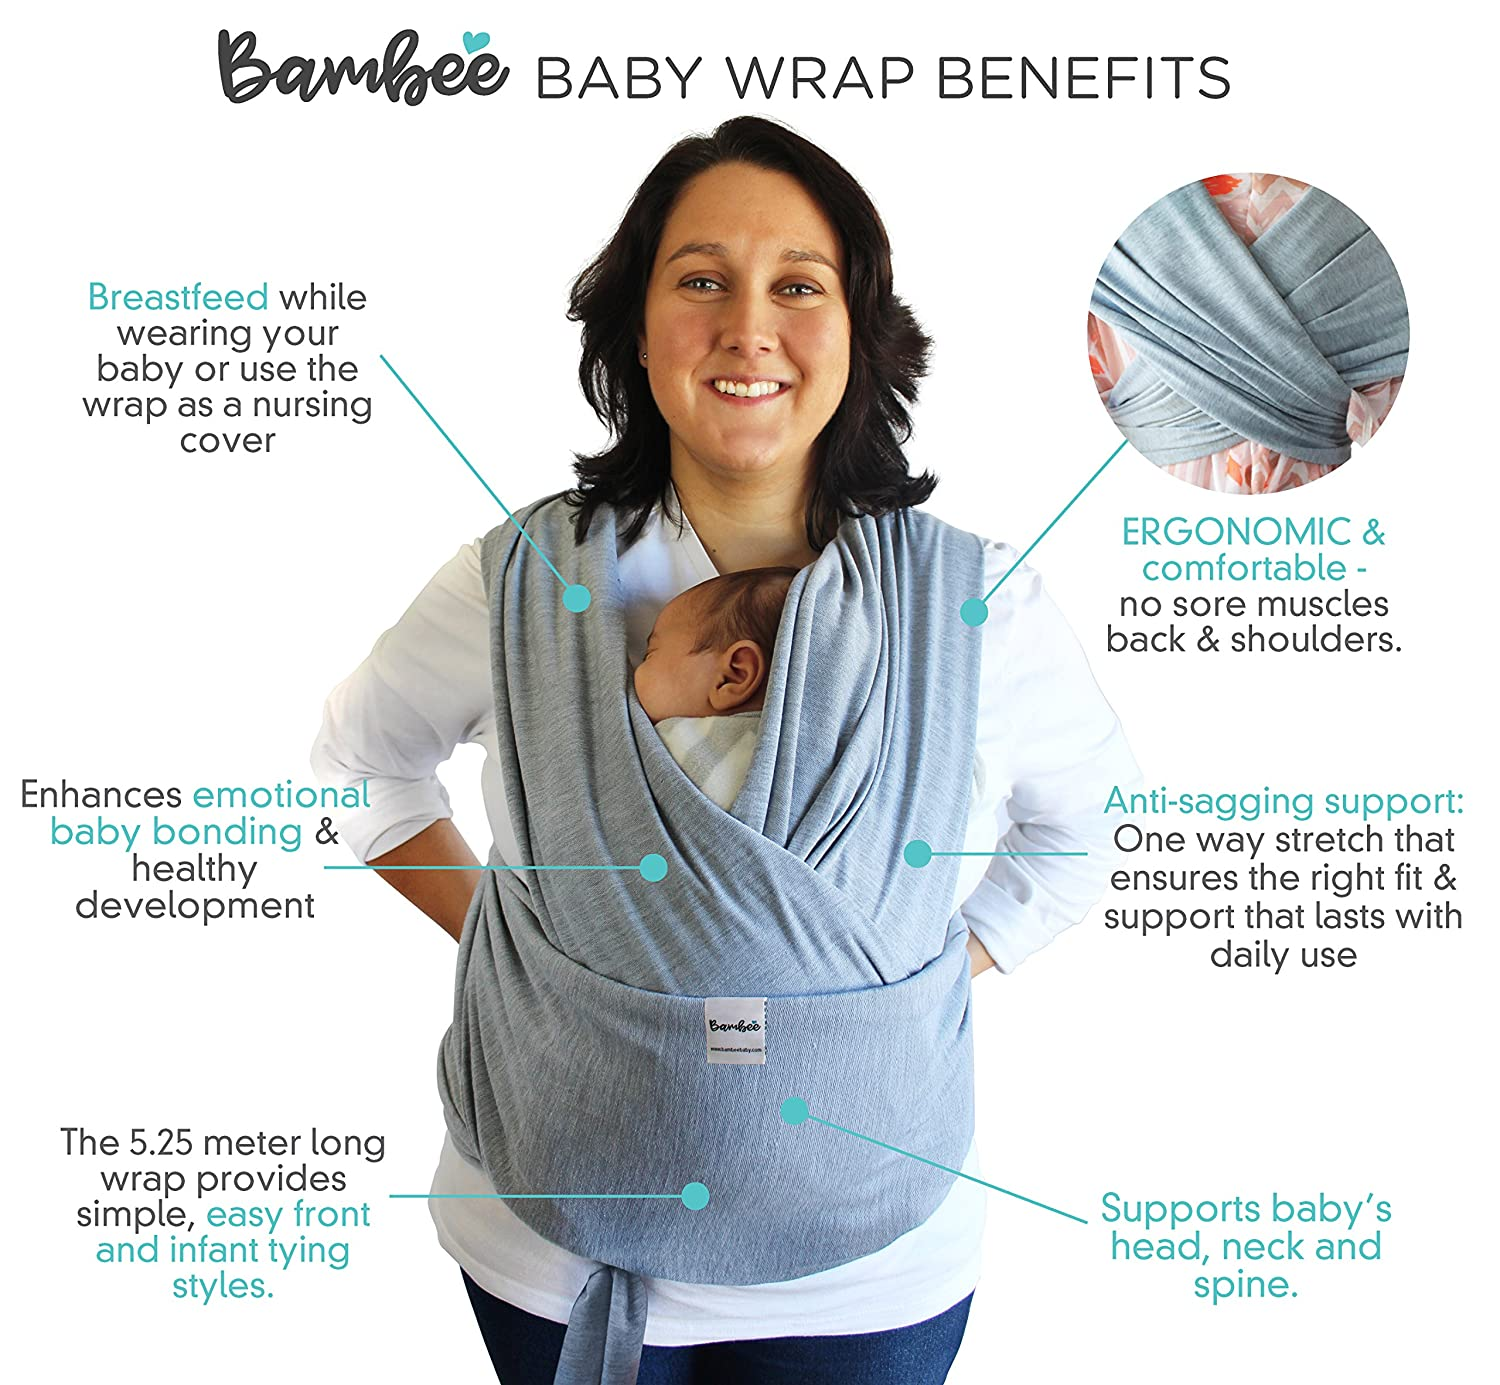 Bambee Baby Sling Wrap, lightweight ergonomic front comfortable carrier best for toddler, newborn baby wearing and nursing, birth-35 lbs, soft natural cotton Gray